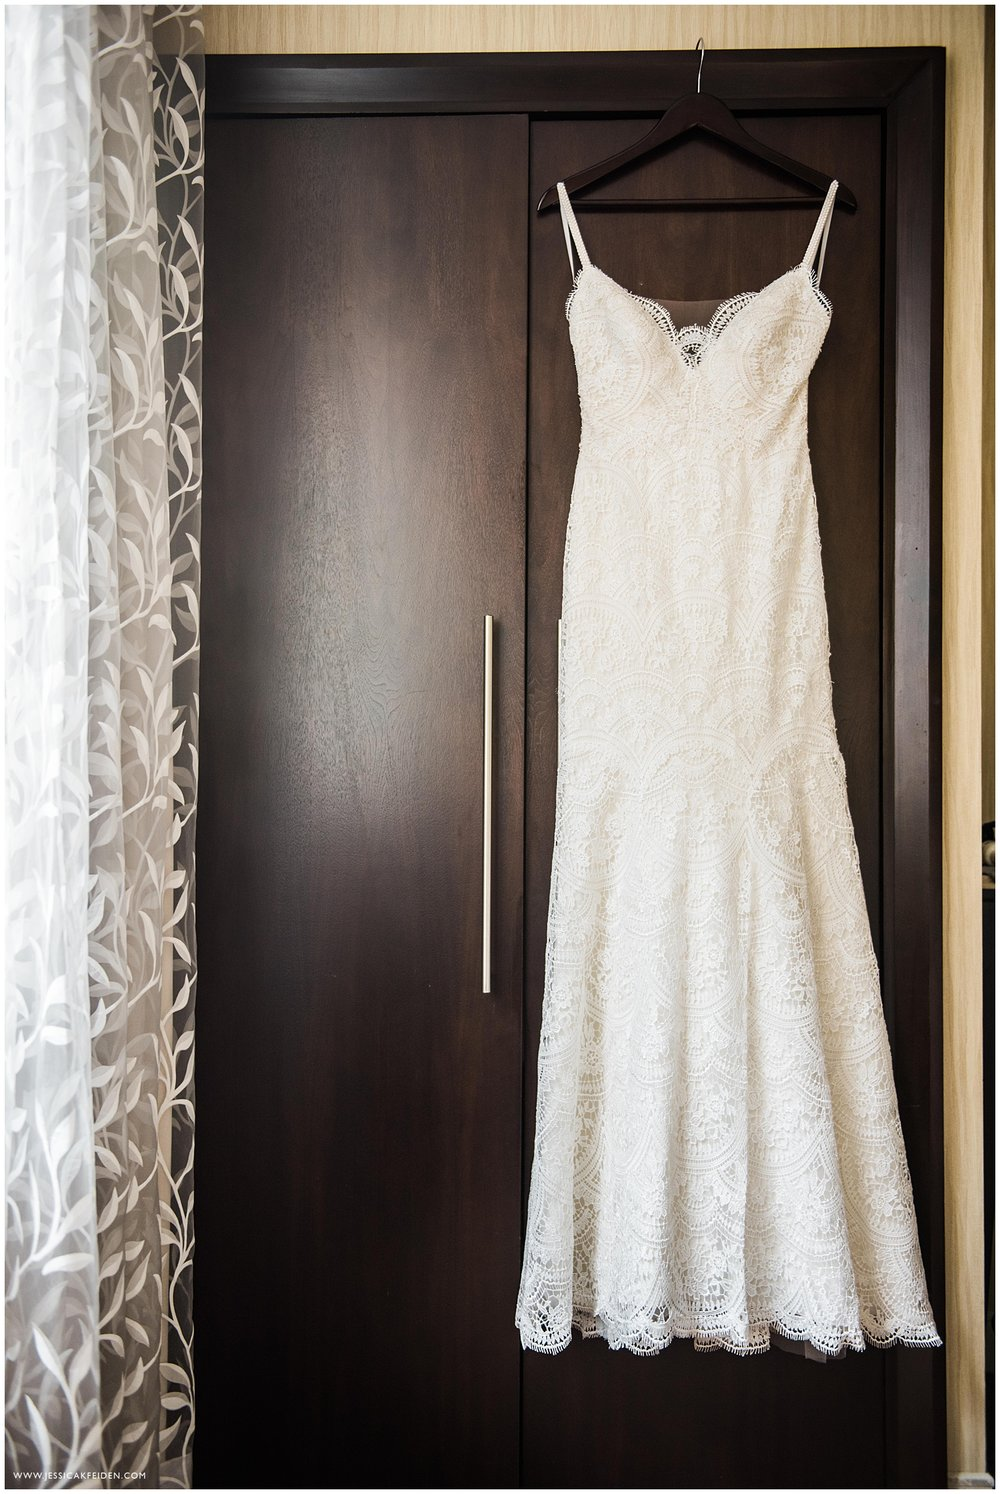 Jessica K Feiden Photography_Top 5 Things to Have Ready for Your Wedding Photographer_0004.jpg